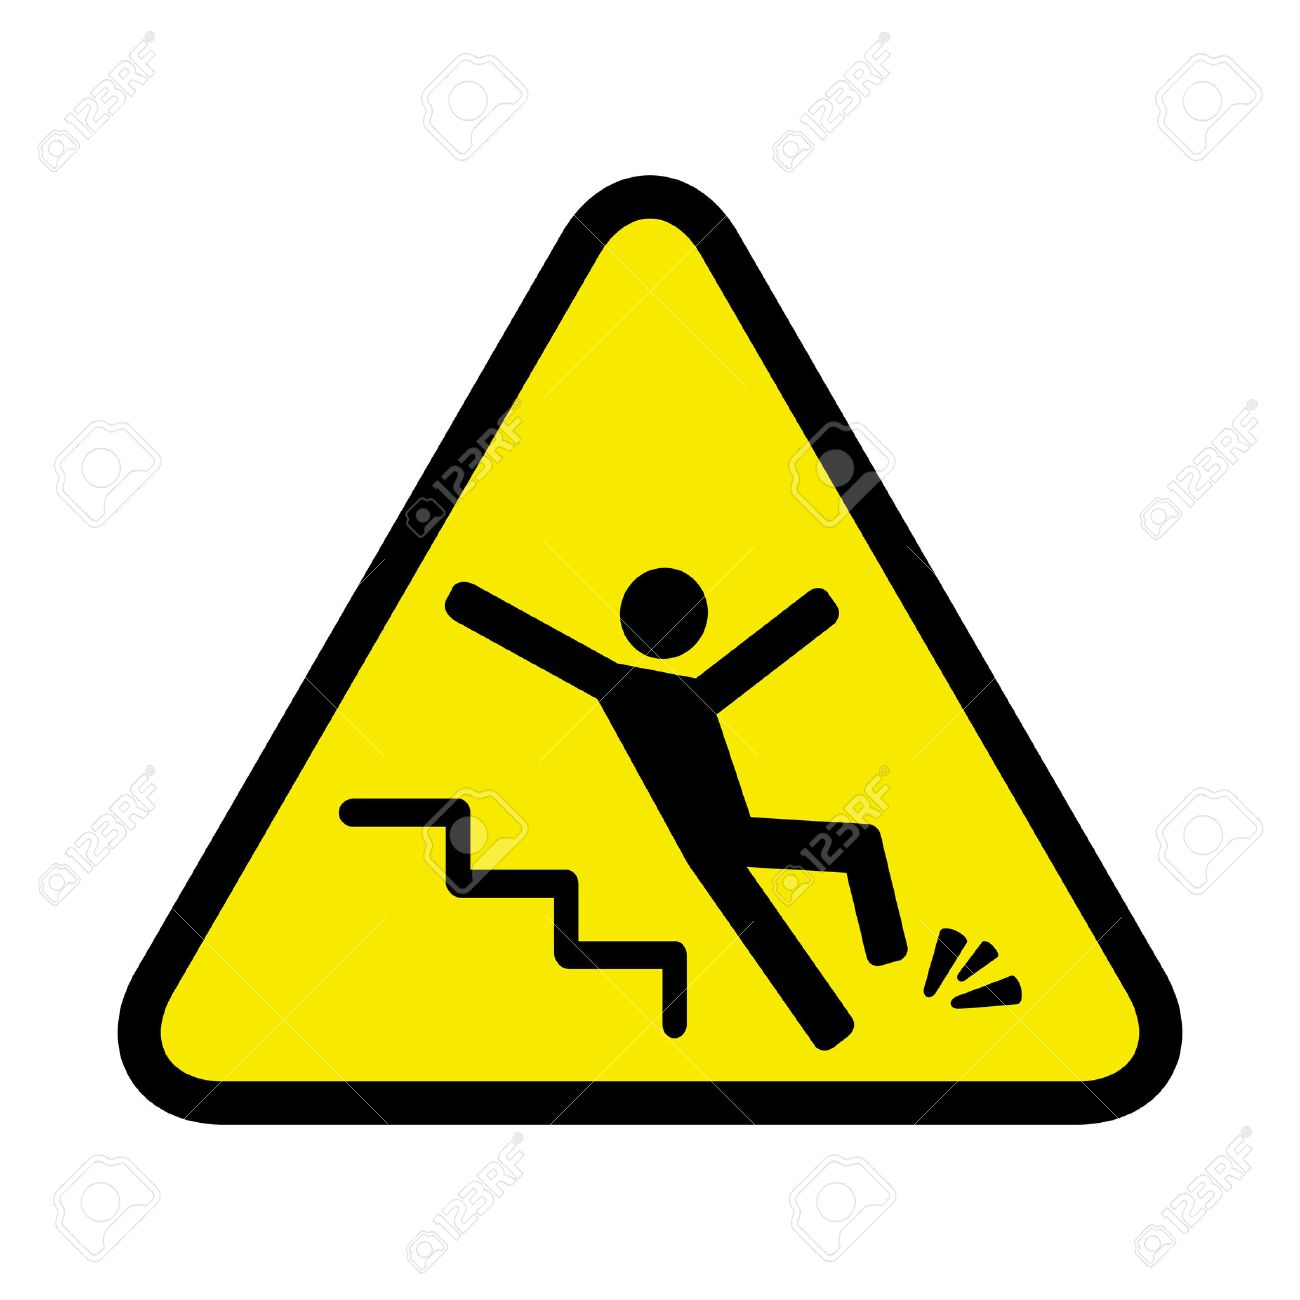 sign of danger of falling because of ice on the stairs - 55443008